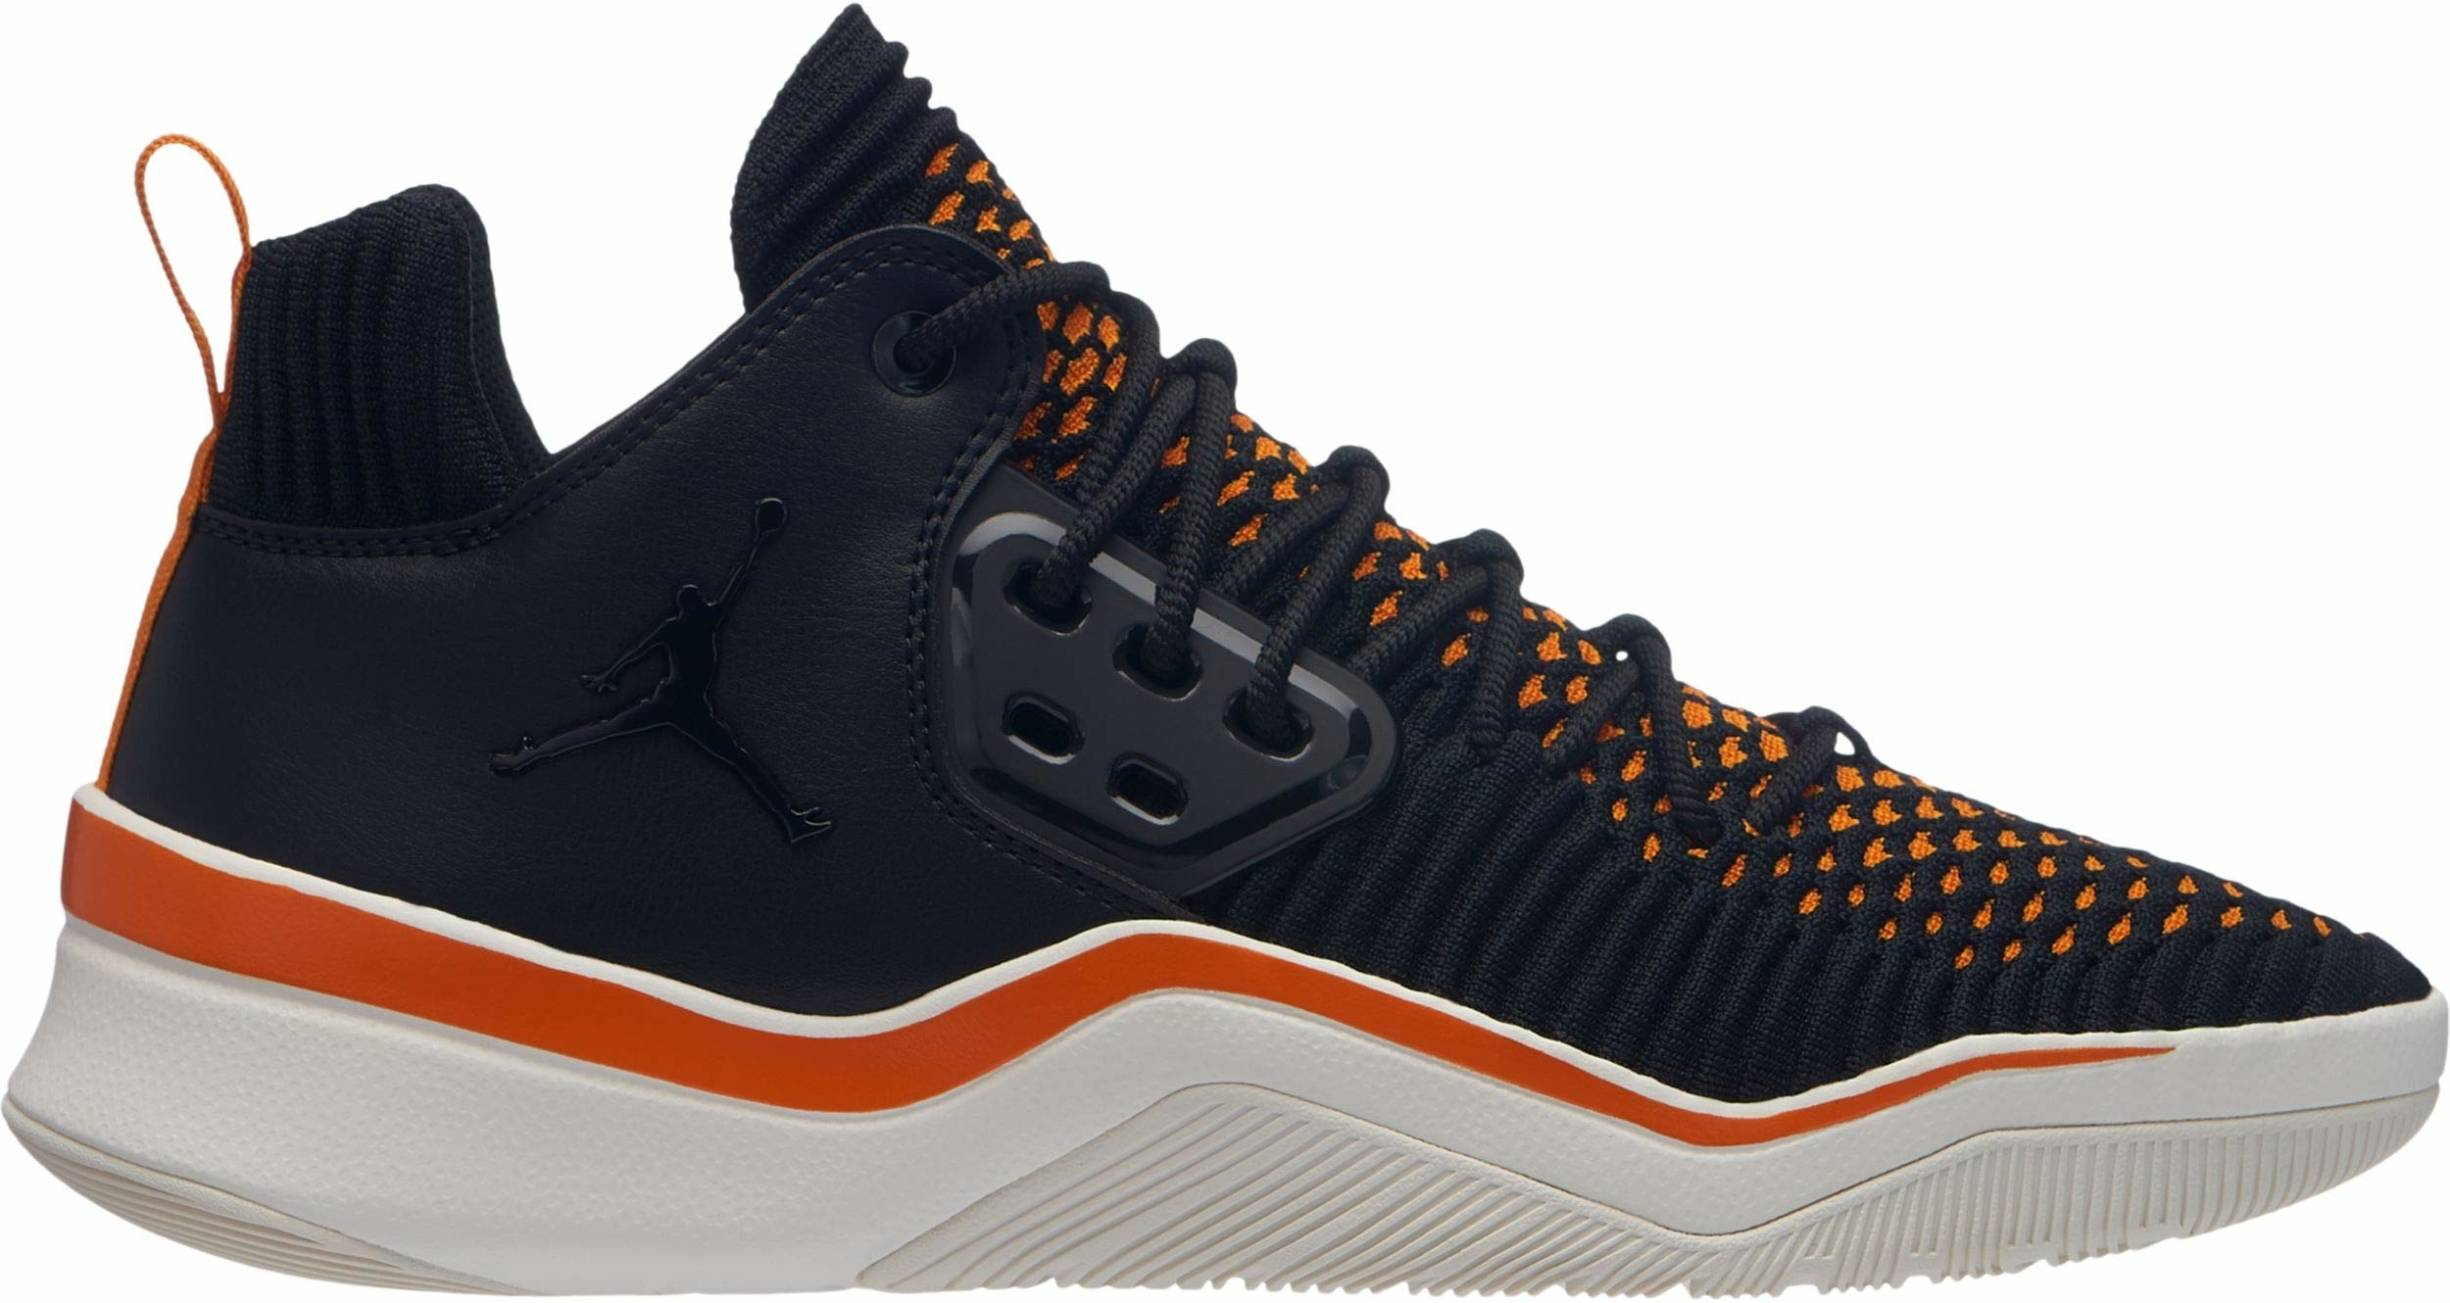 Only $103 + Review of Jordan DNA LX